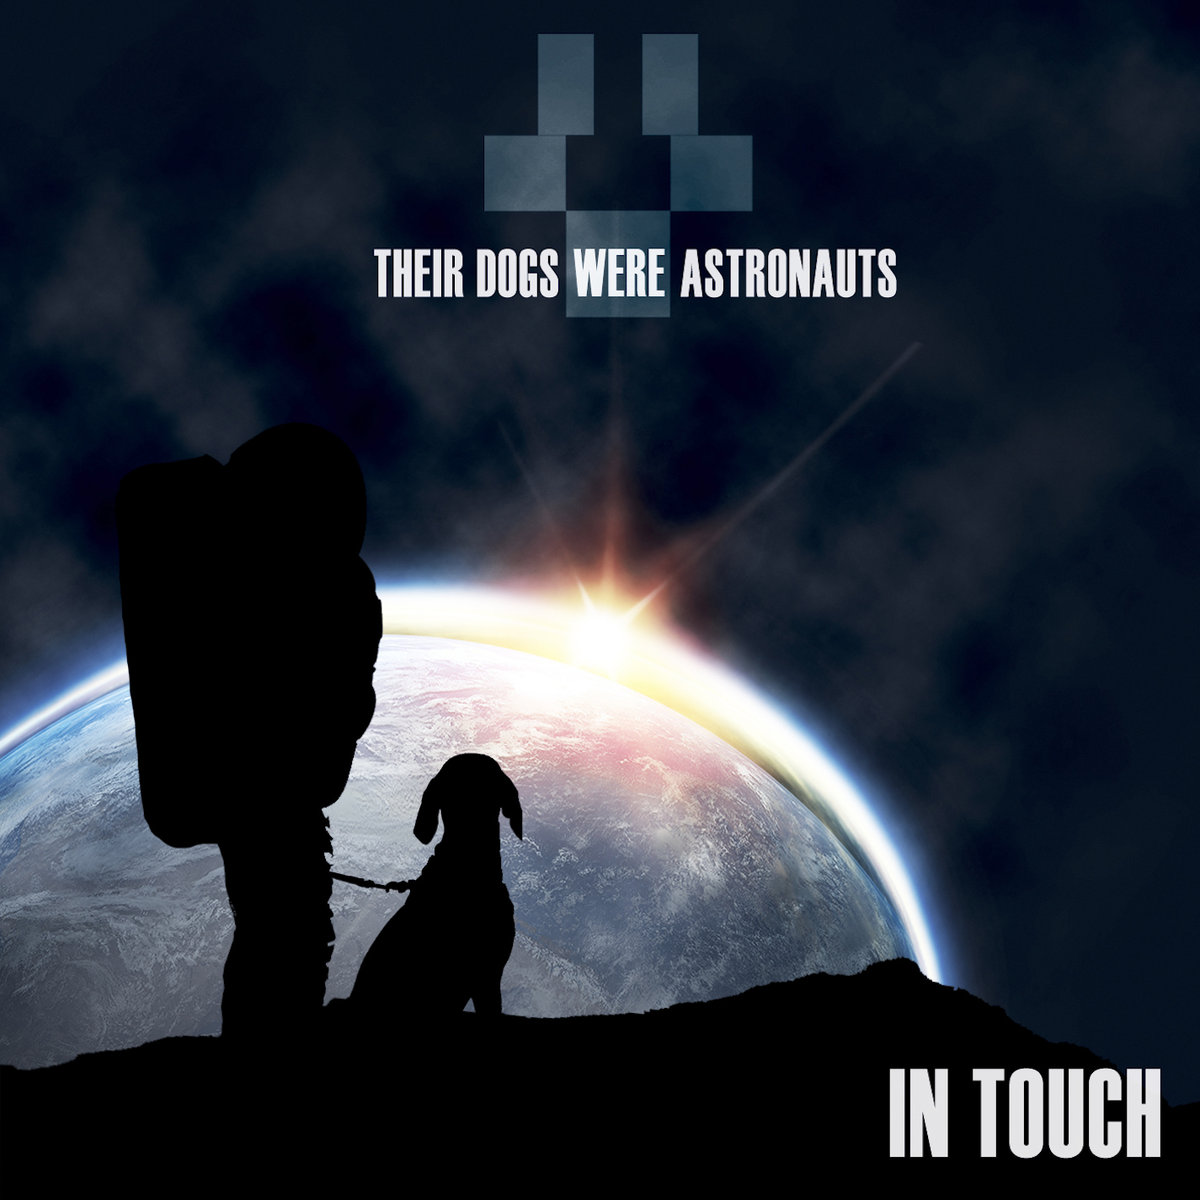 Their Dogs Were Astronauts - Energetic Abduction @ 'In Touch' album (instrumental metal, metal)